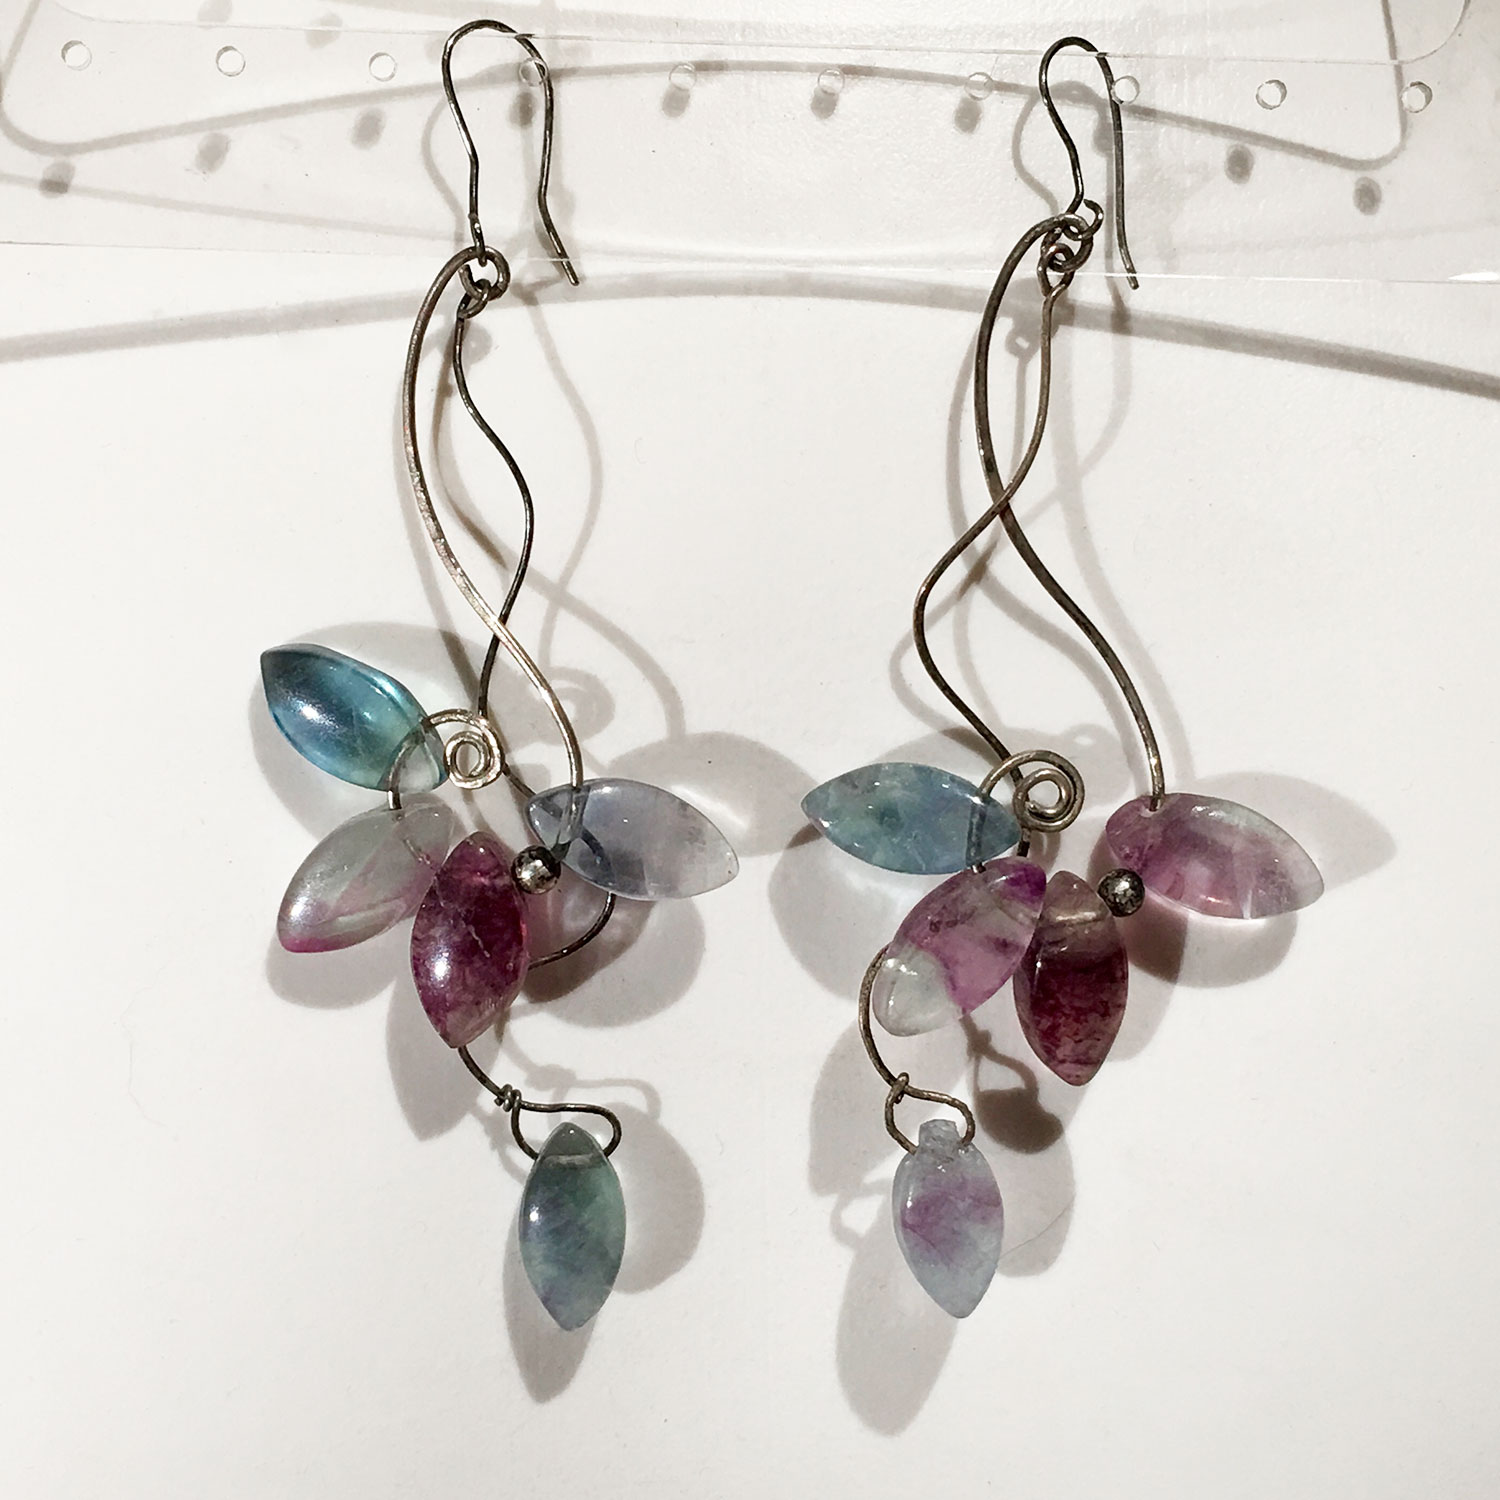 Earrings-12.jpg